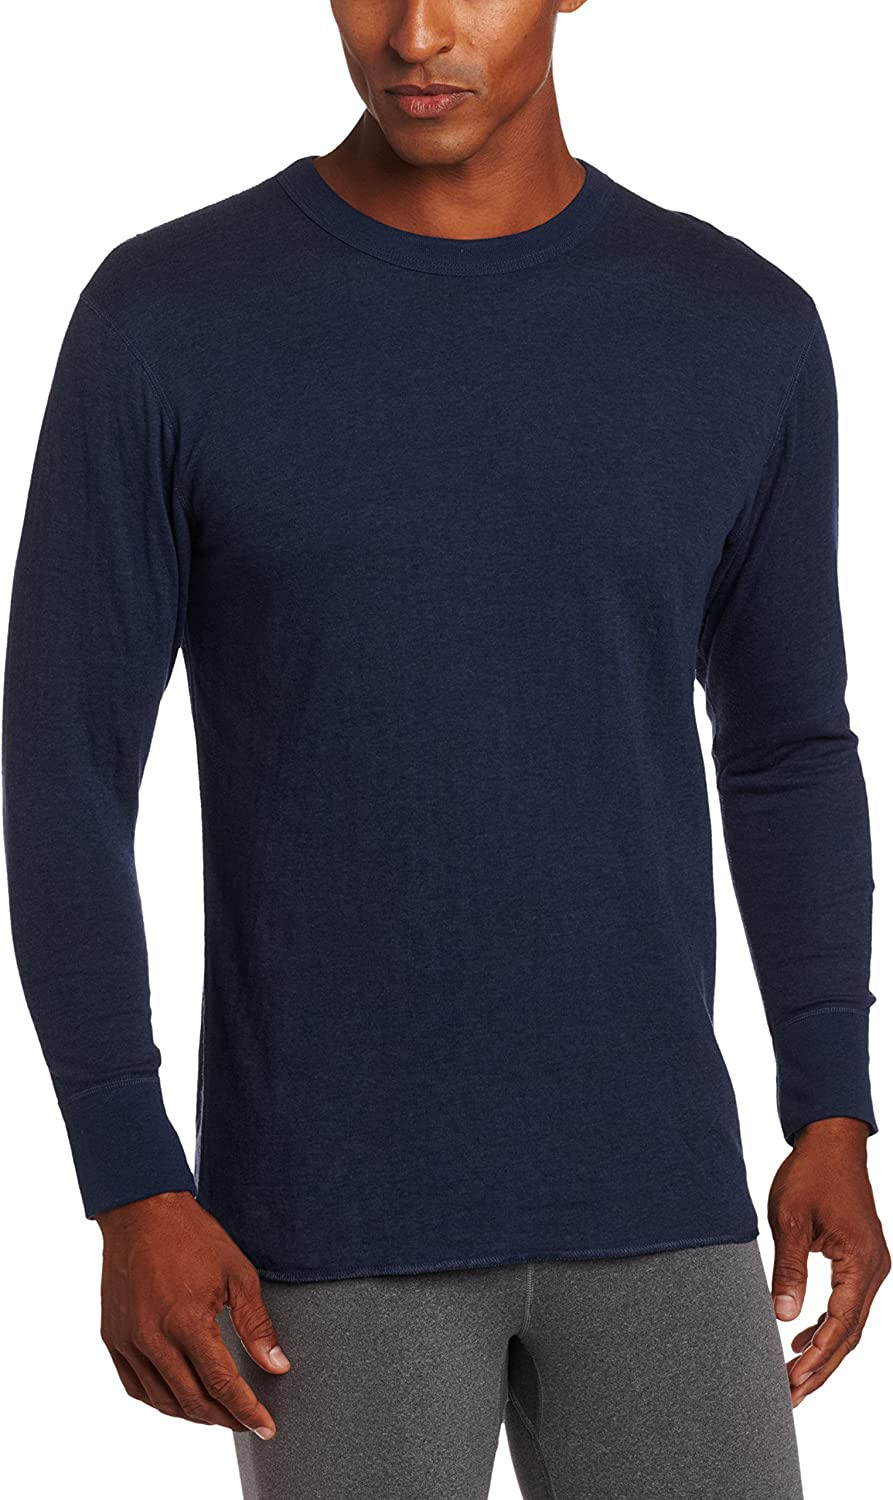 Duofold Men's Mid Weight Crew Neck Thermal Sleepwear at  Men's Clothing store: Base Layer Tops